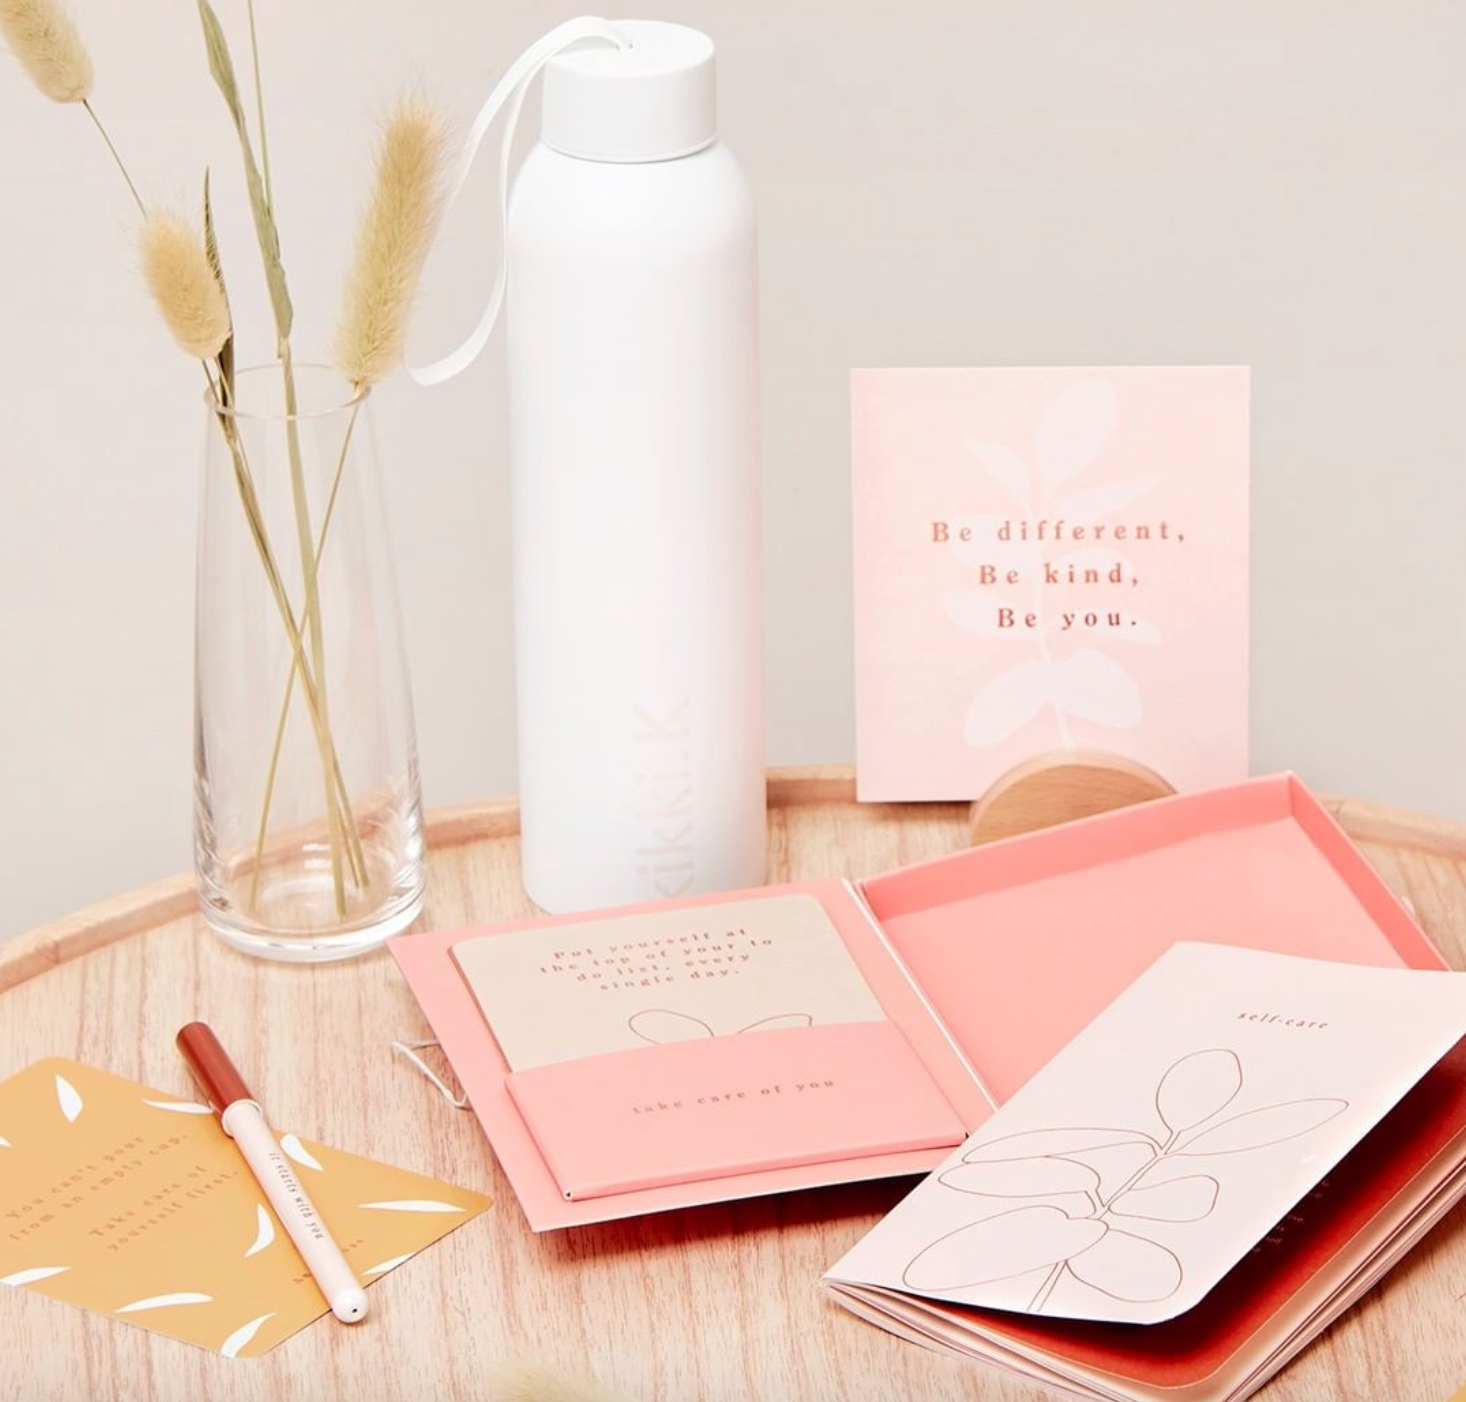 Above: kikki.K has built up a following for its cards, stationery and homewares products globally.